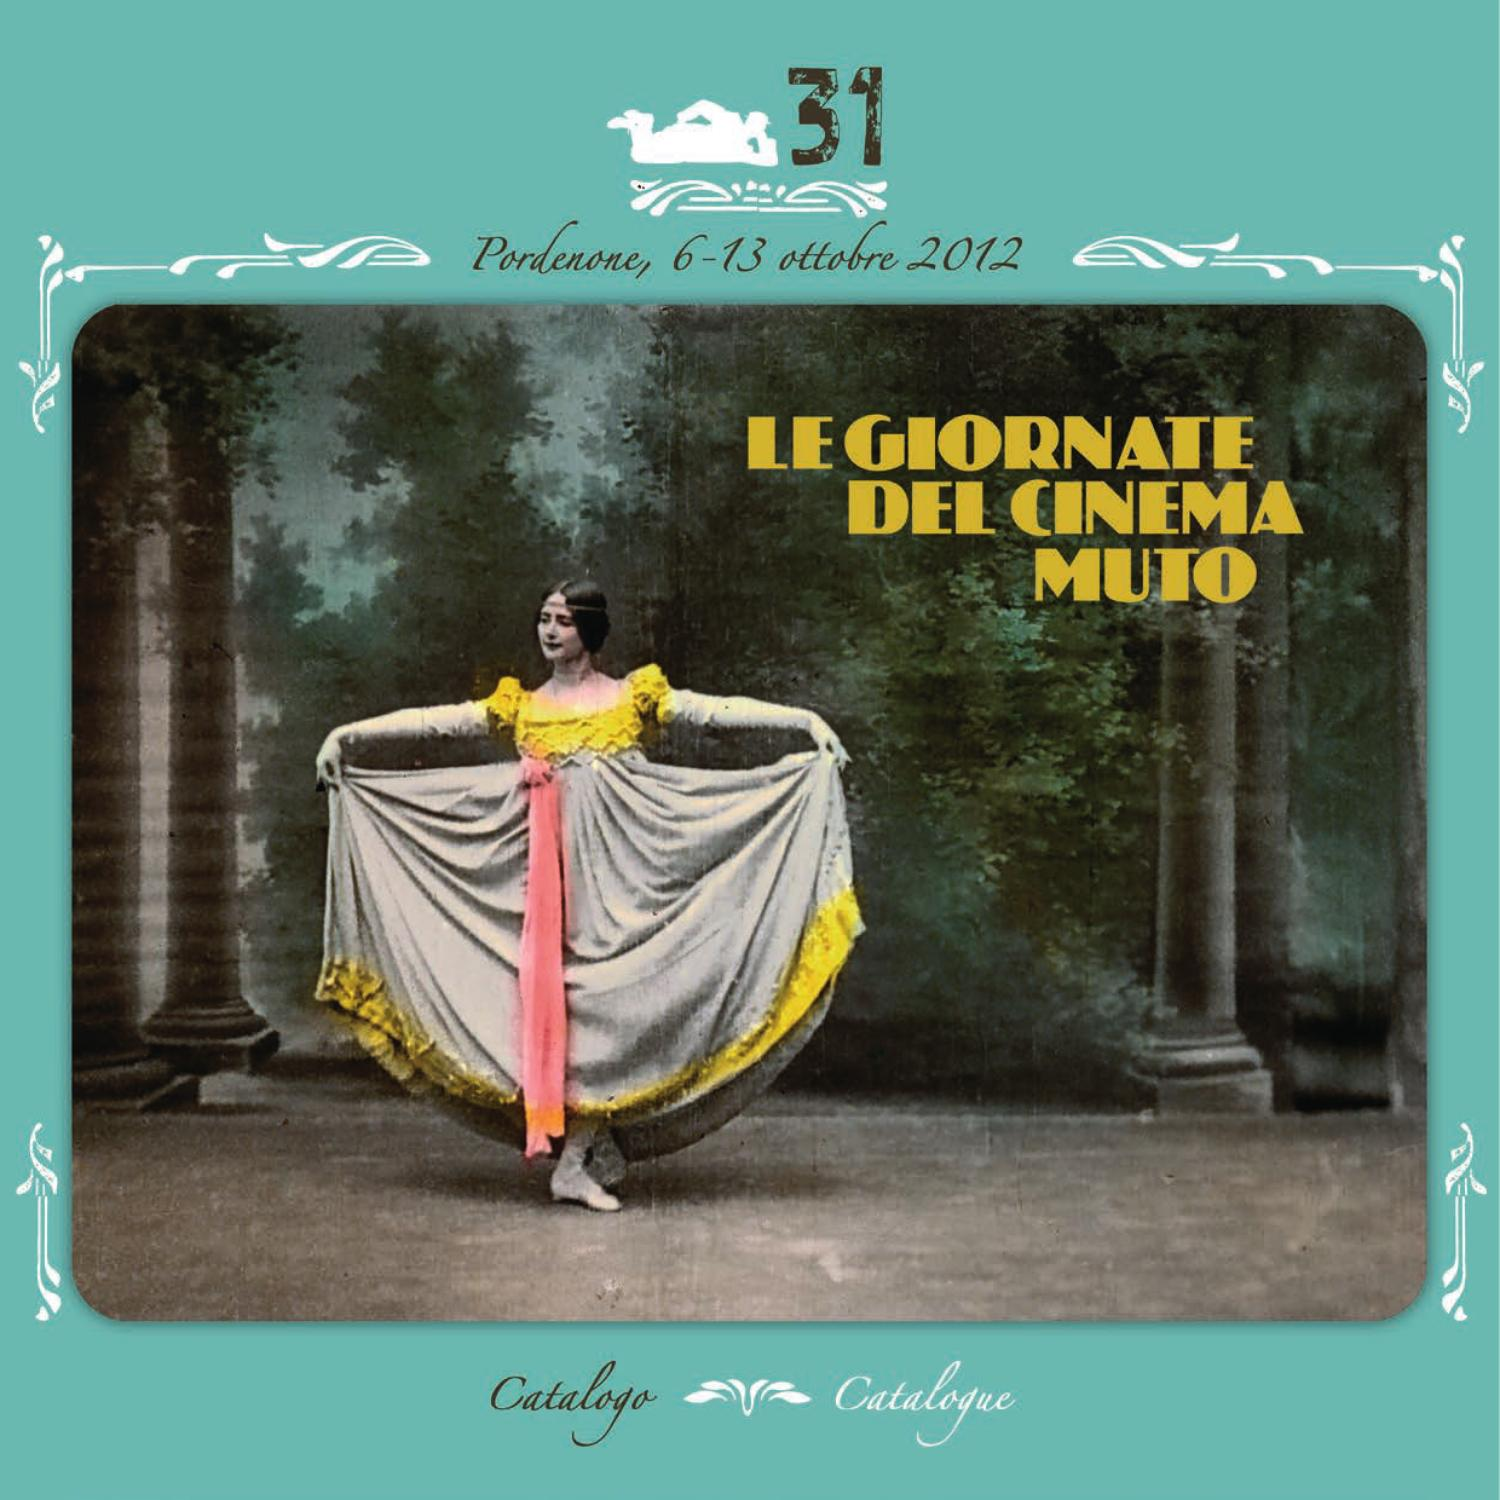 Catalogo Catalogue by Le Giornate del Cinema Muto - issuu 8c36d384b303